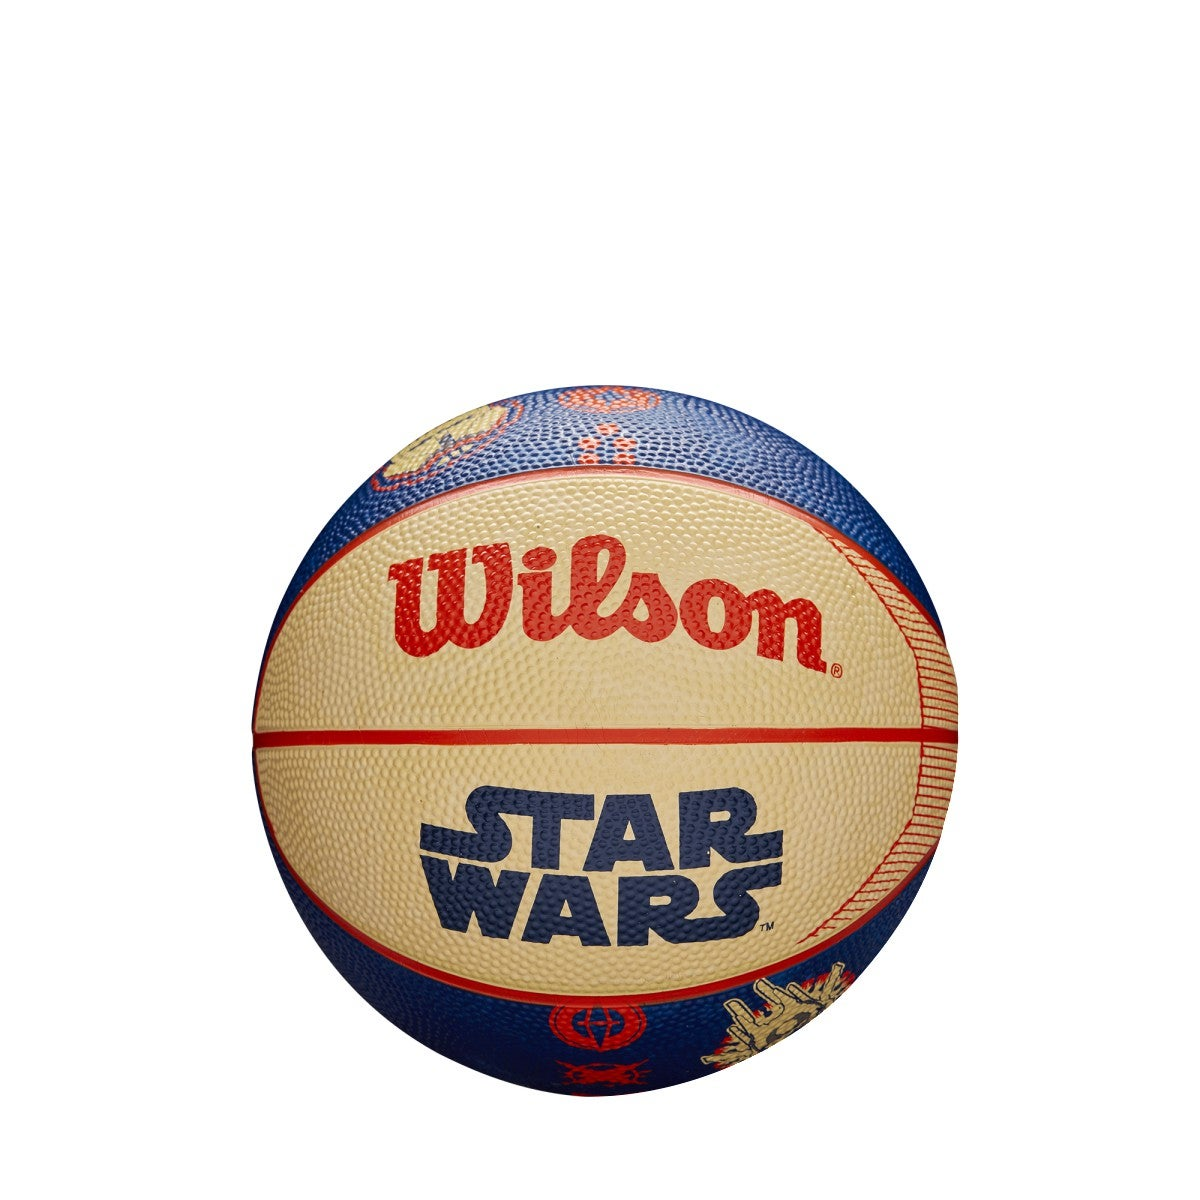 Han Solo & Chewbacca Mini Basketball: Co-Pilot